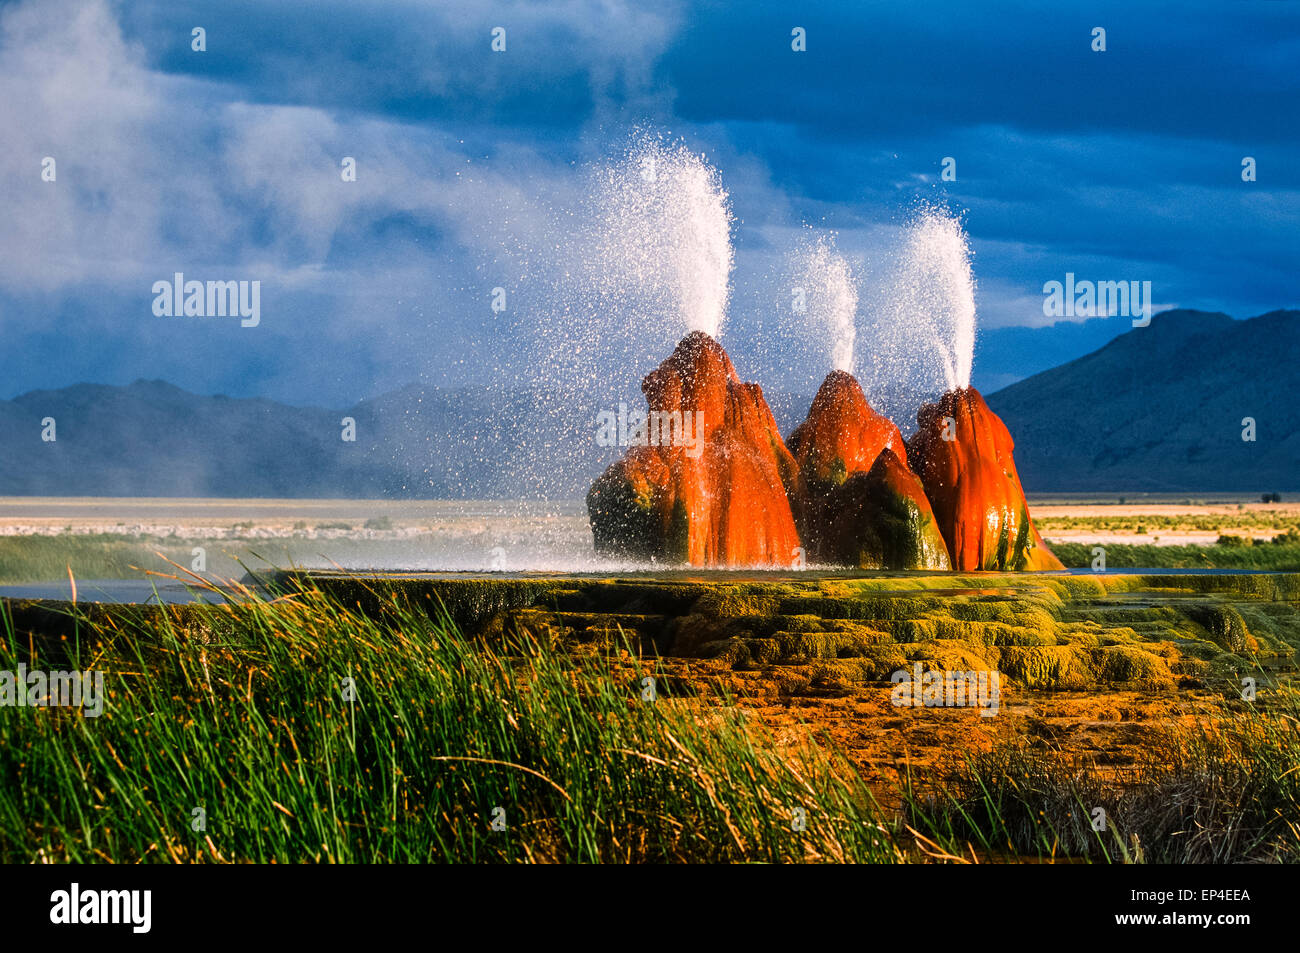 The unique Fly Geyser formation in the Black Rock desert of Nevada is the result of geothermal exploration. Stock Photo